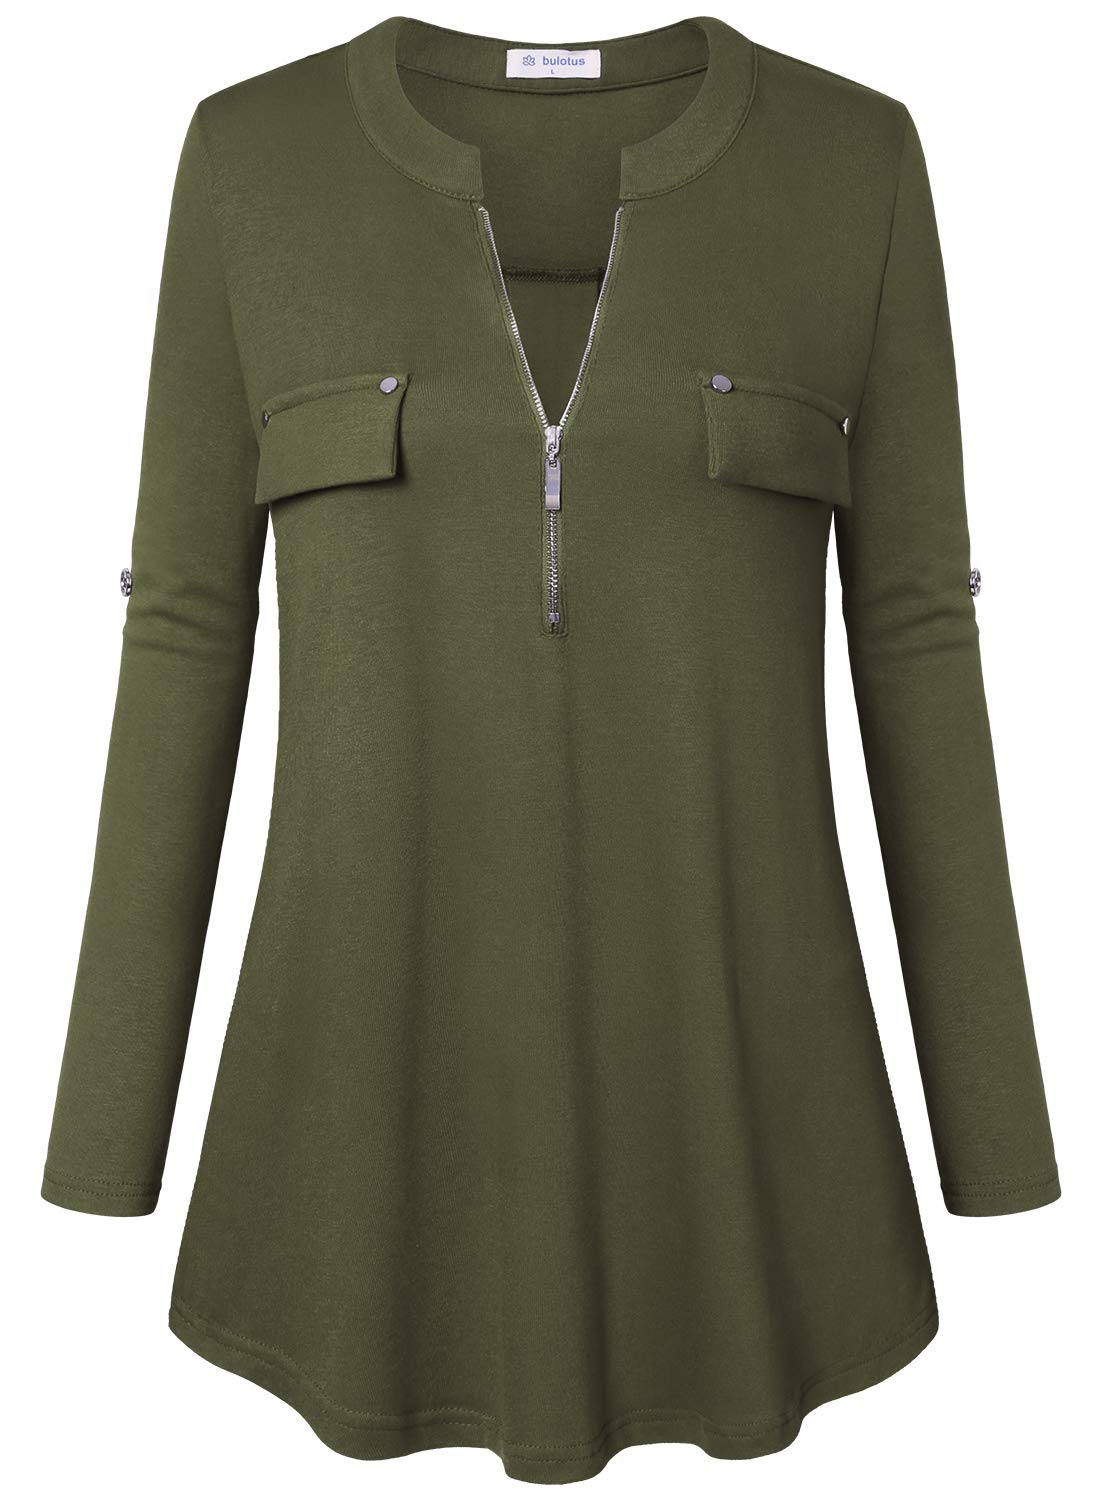 Bulotus Women's Plus Size Solid 3/4 Sleeve Zipper Top Casual Shirt,Green,XX-Large by Bulotus (Image #3)